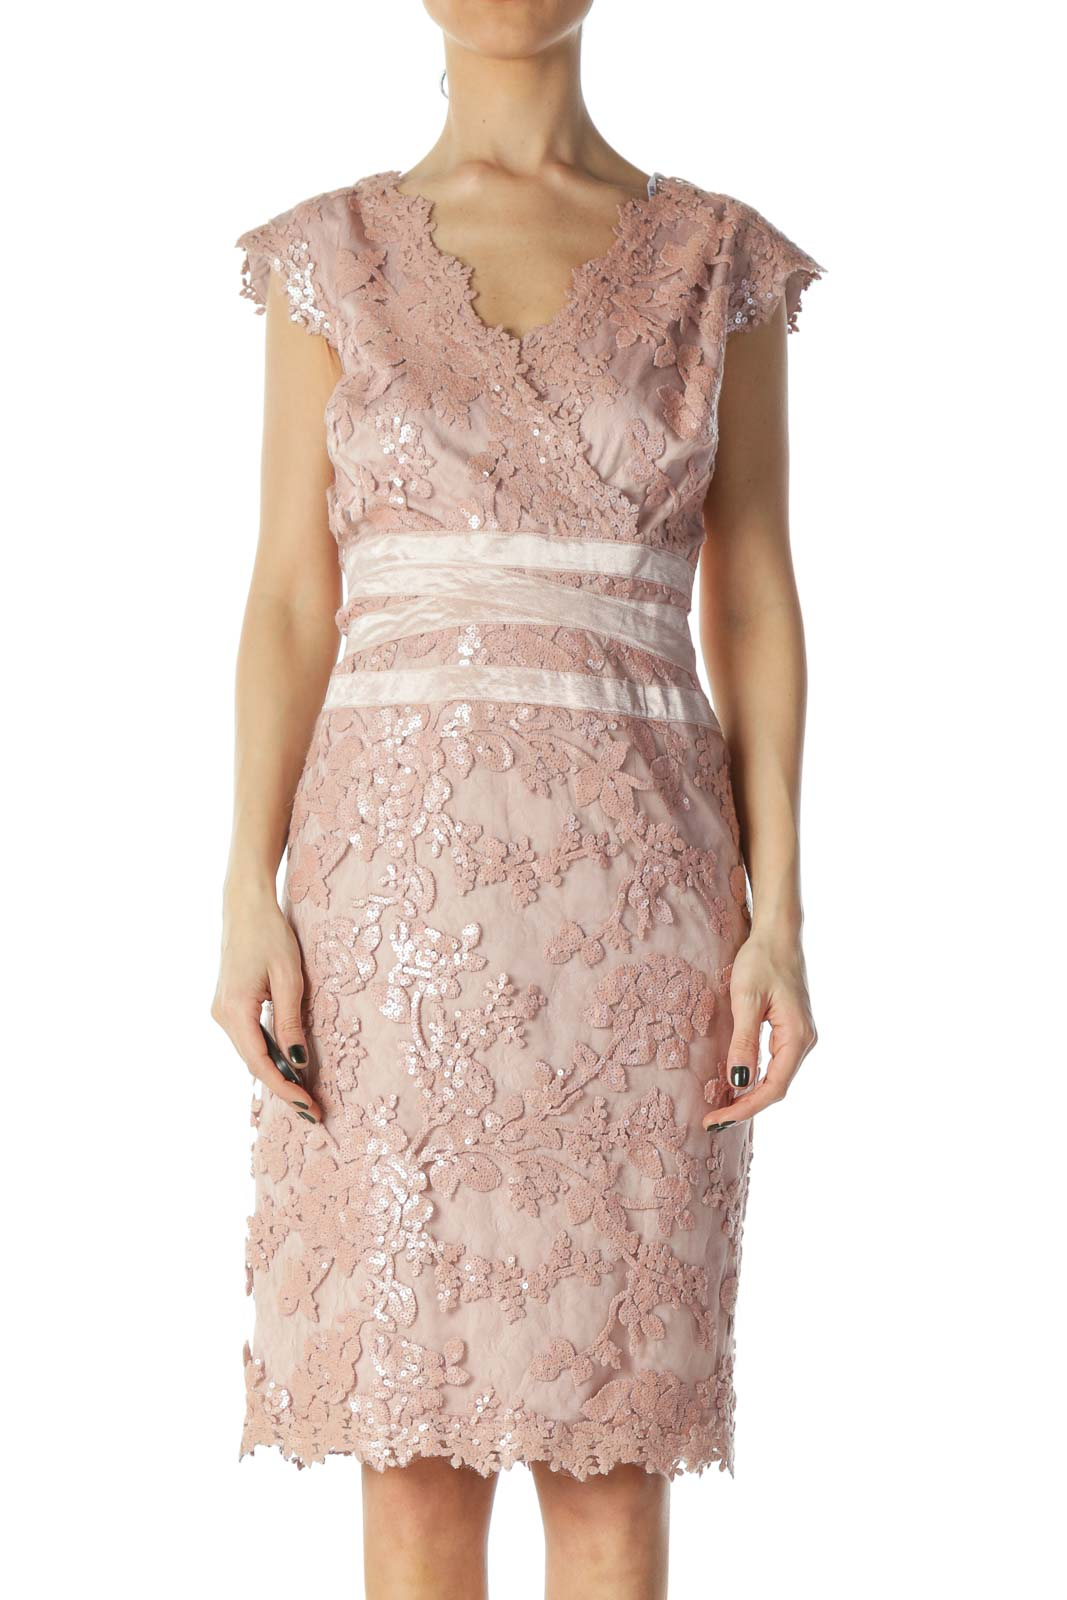 Pink Sequin and Lace Cocktail Dress Front